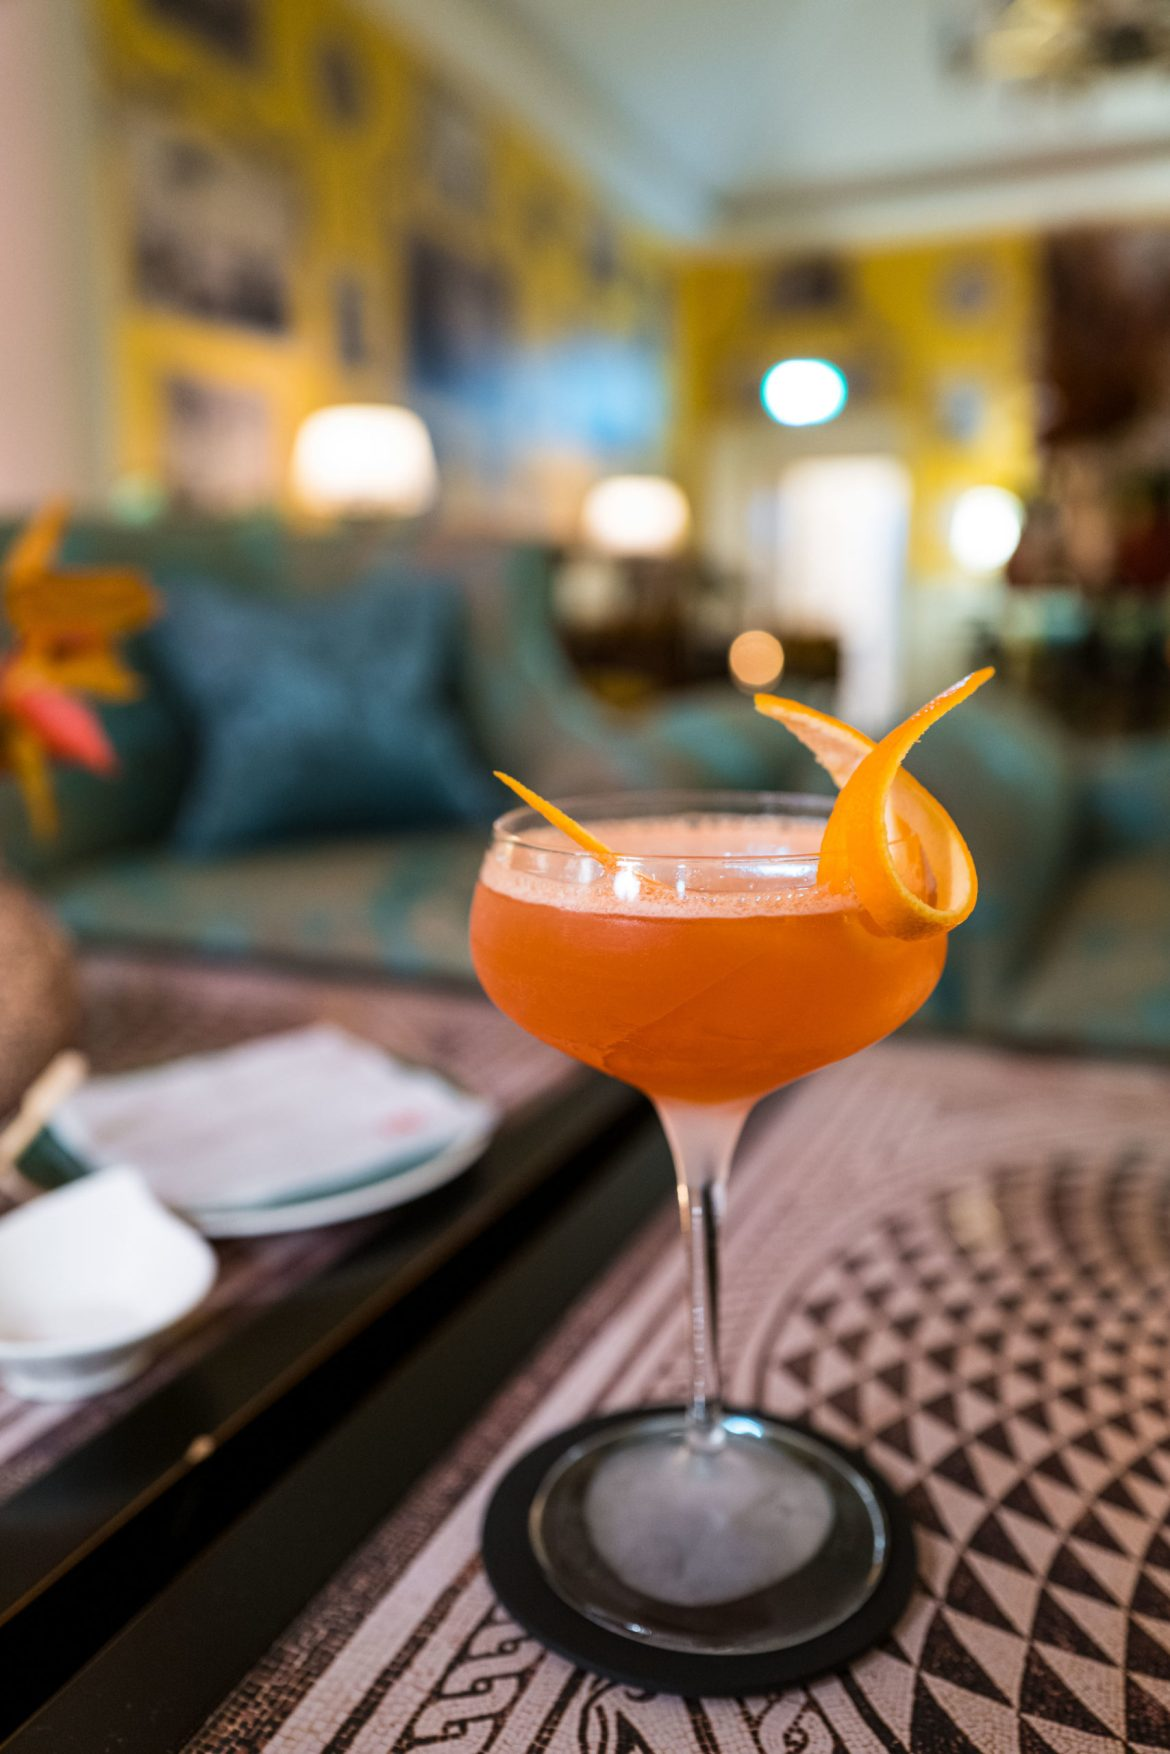 Order signature cocktails at Julep Herbal & Vermouth Bar at Rocco Forte's Hotel de la Ville Rome - The Taste Edit #rome #hotel #decor #travel